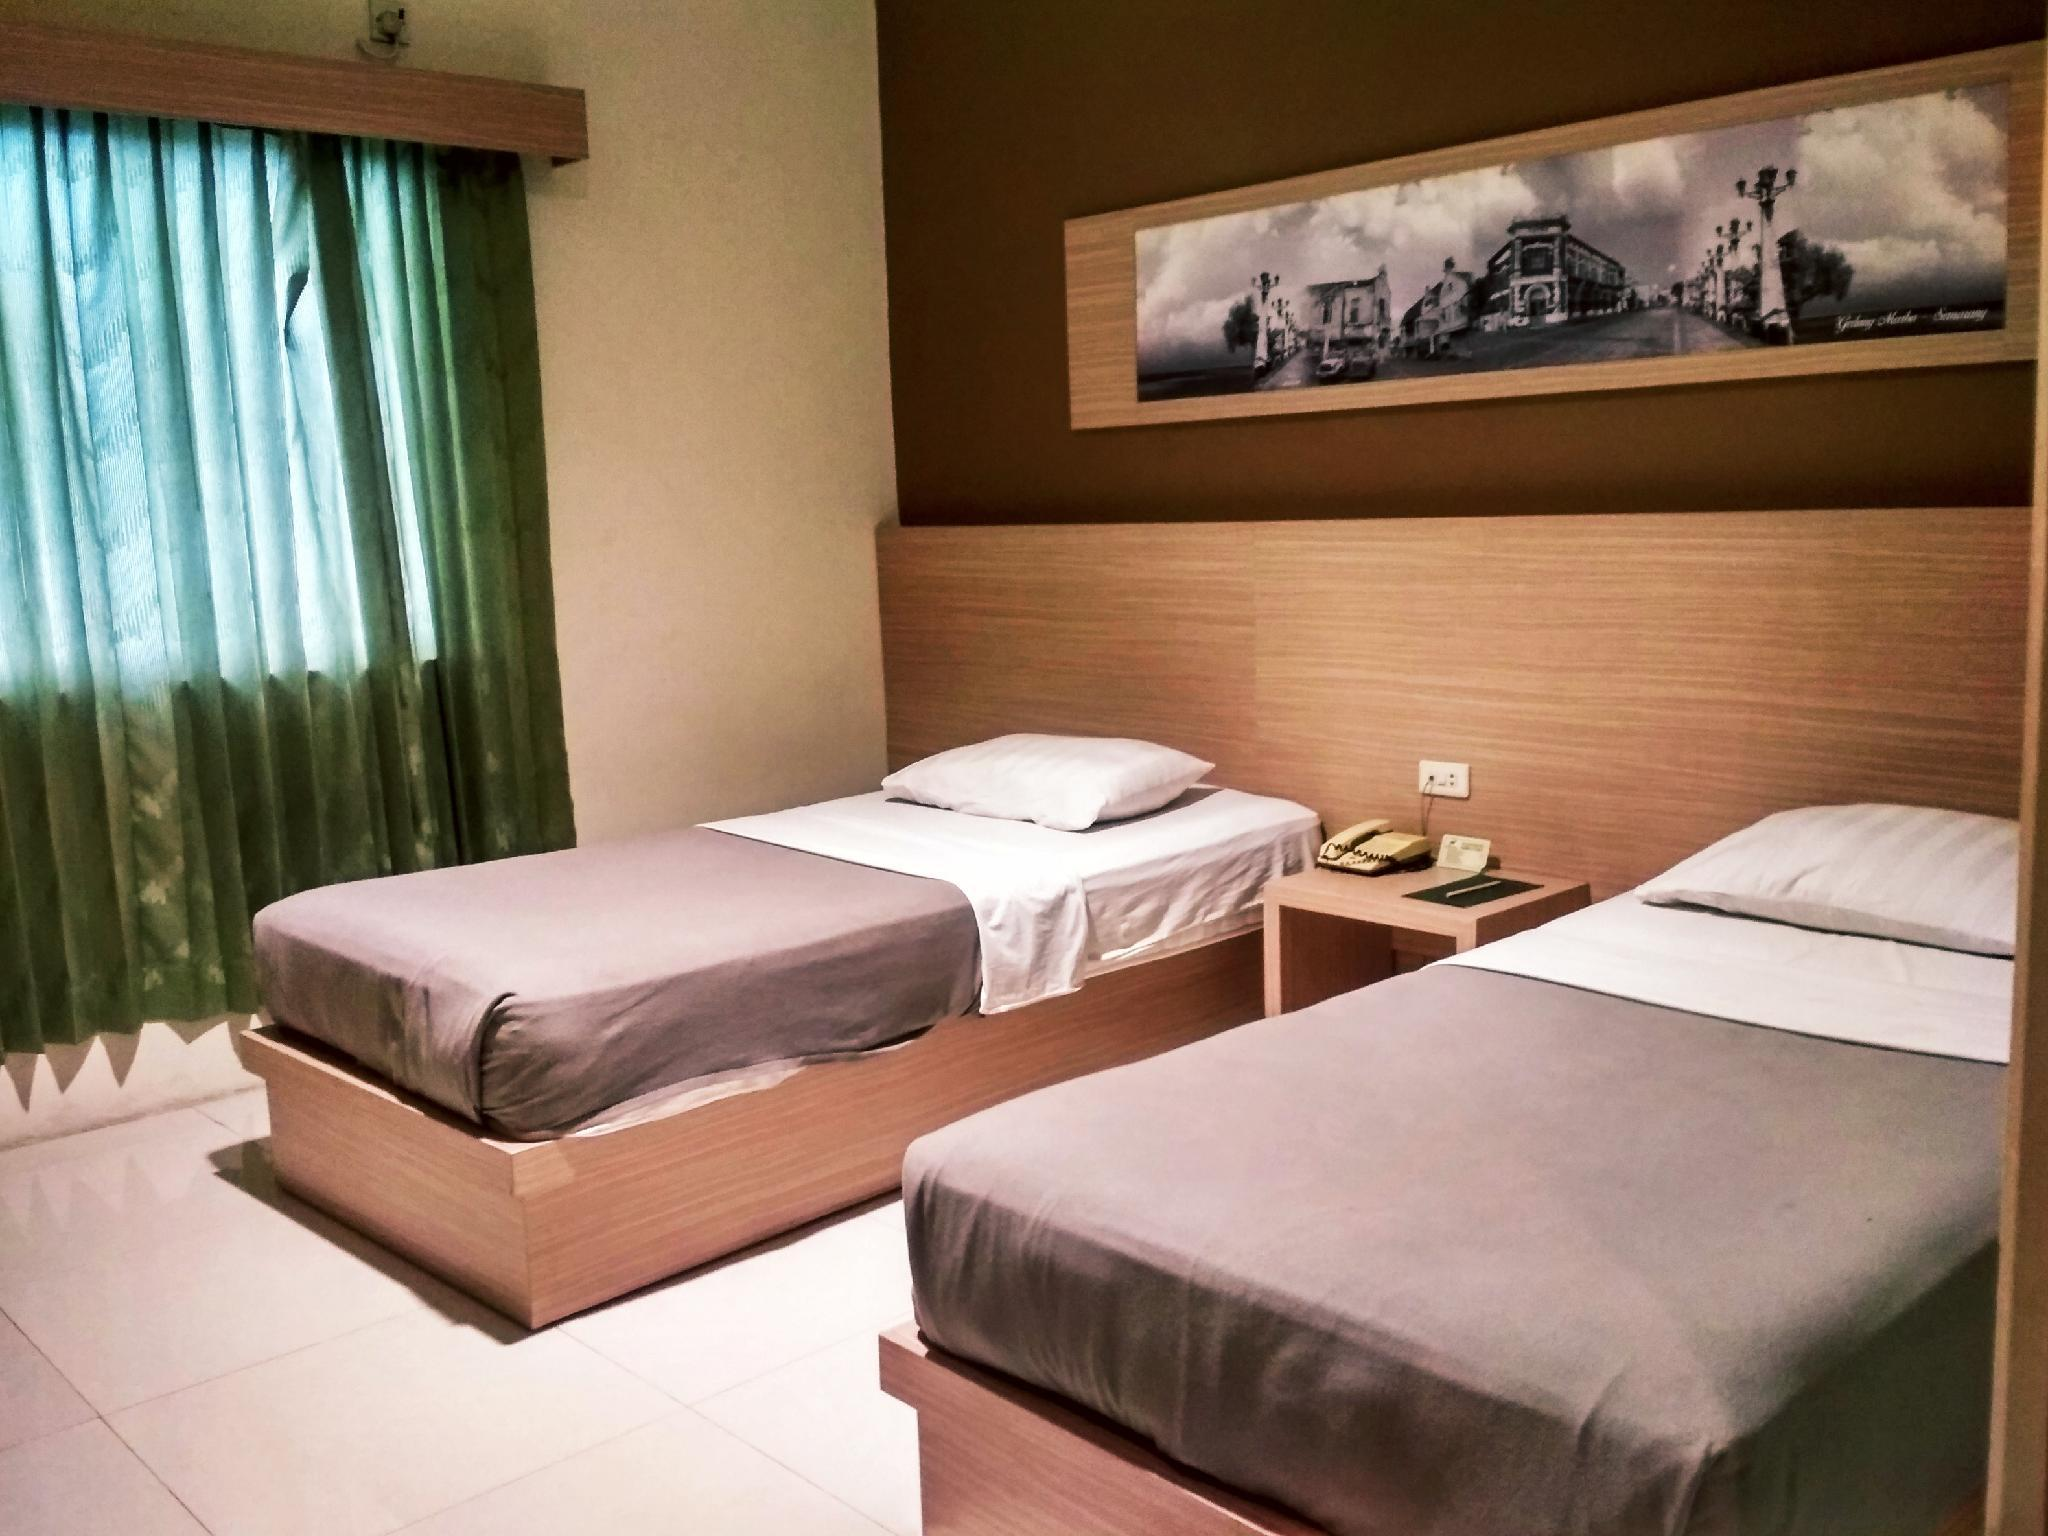 Hanya Kamar Superior (Superior Room Only)